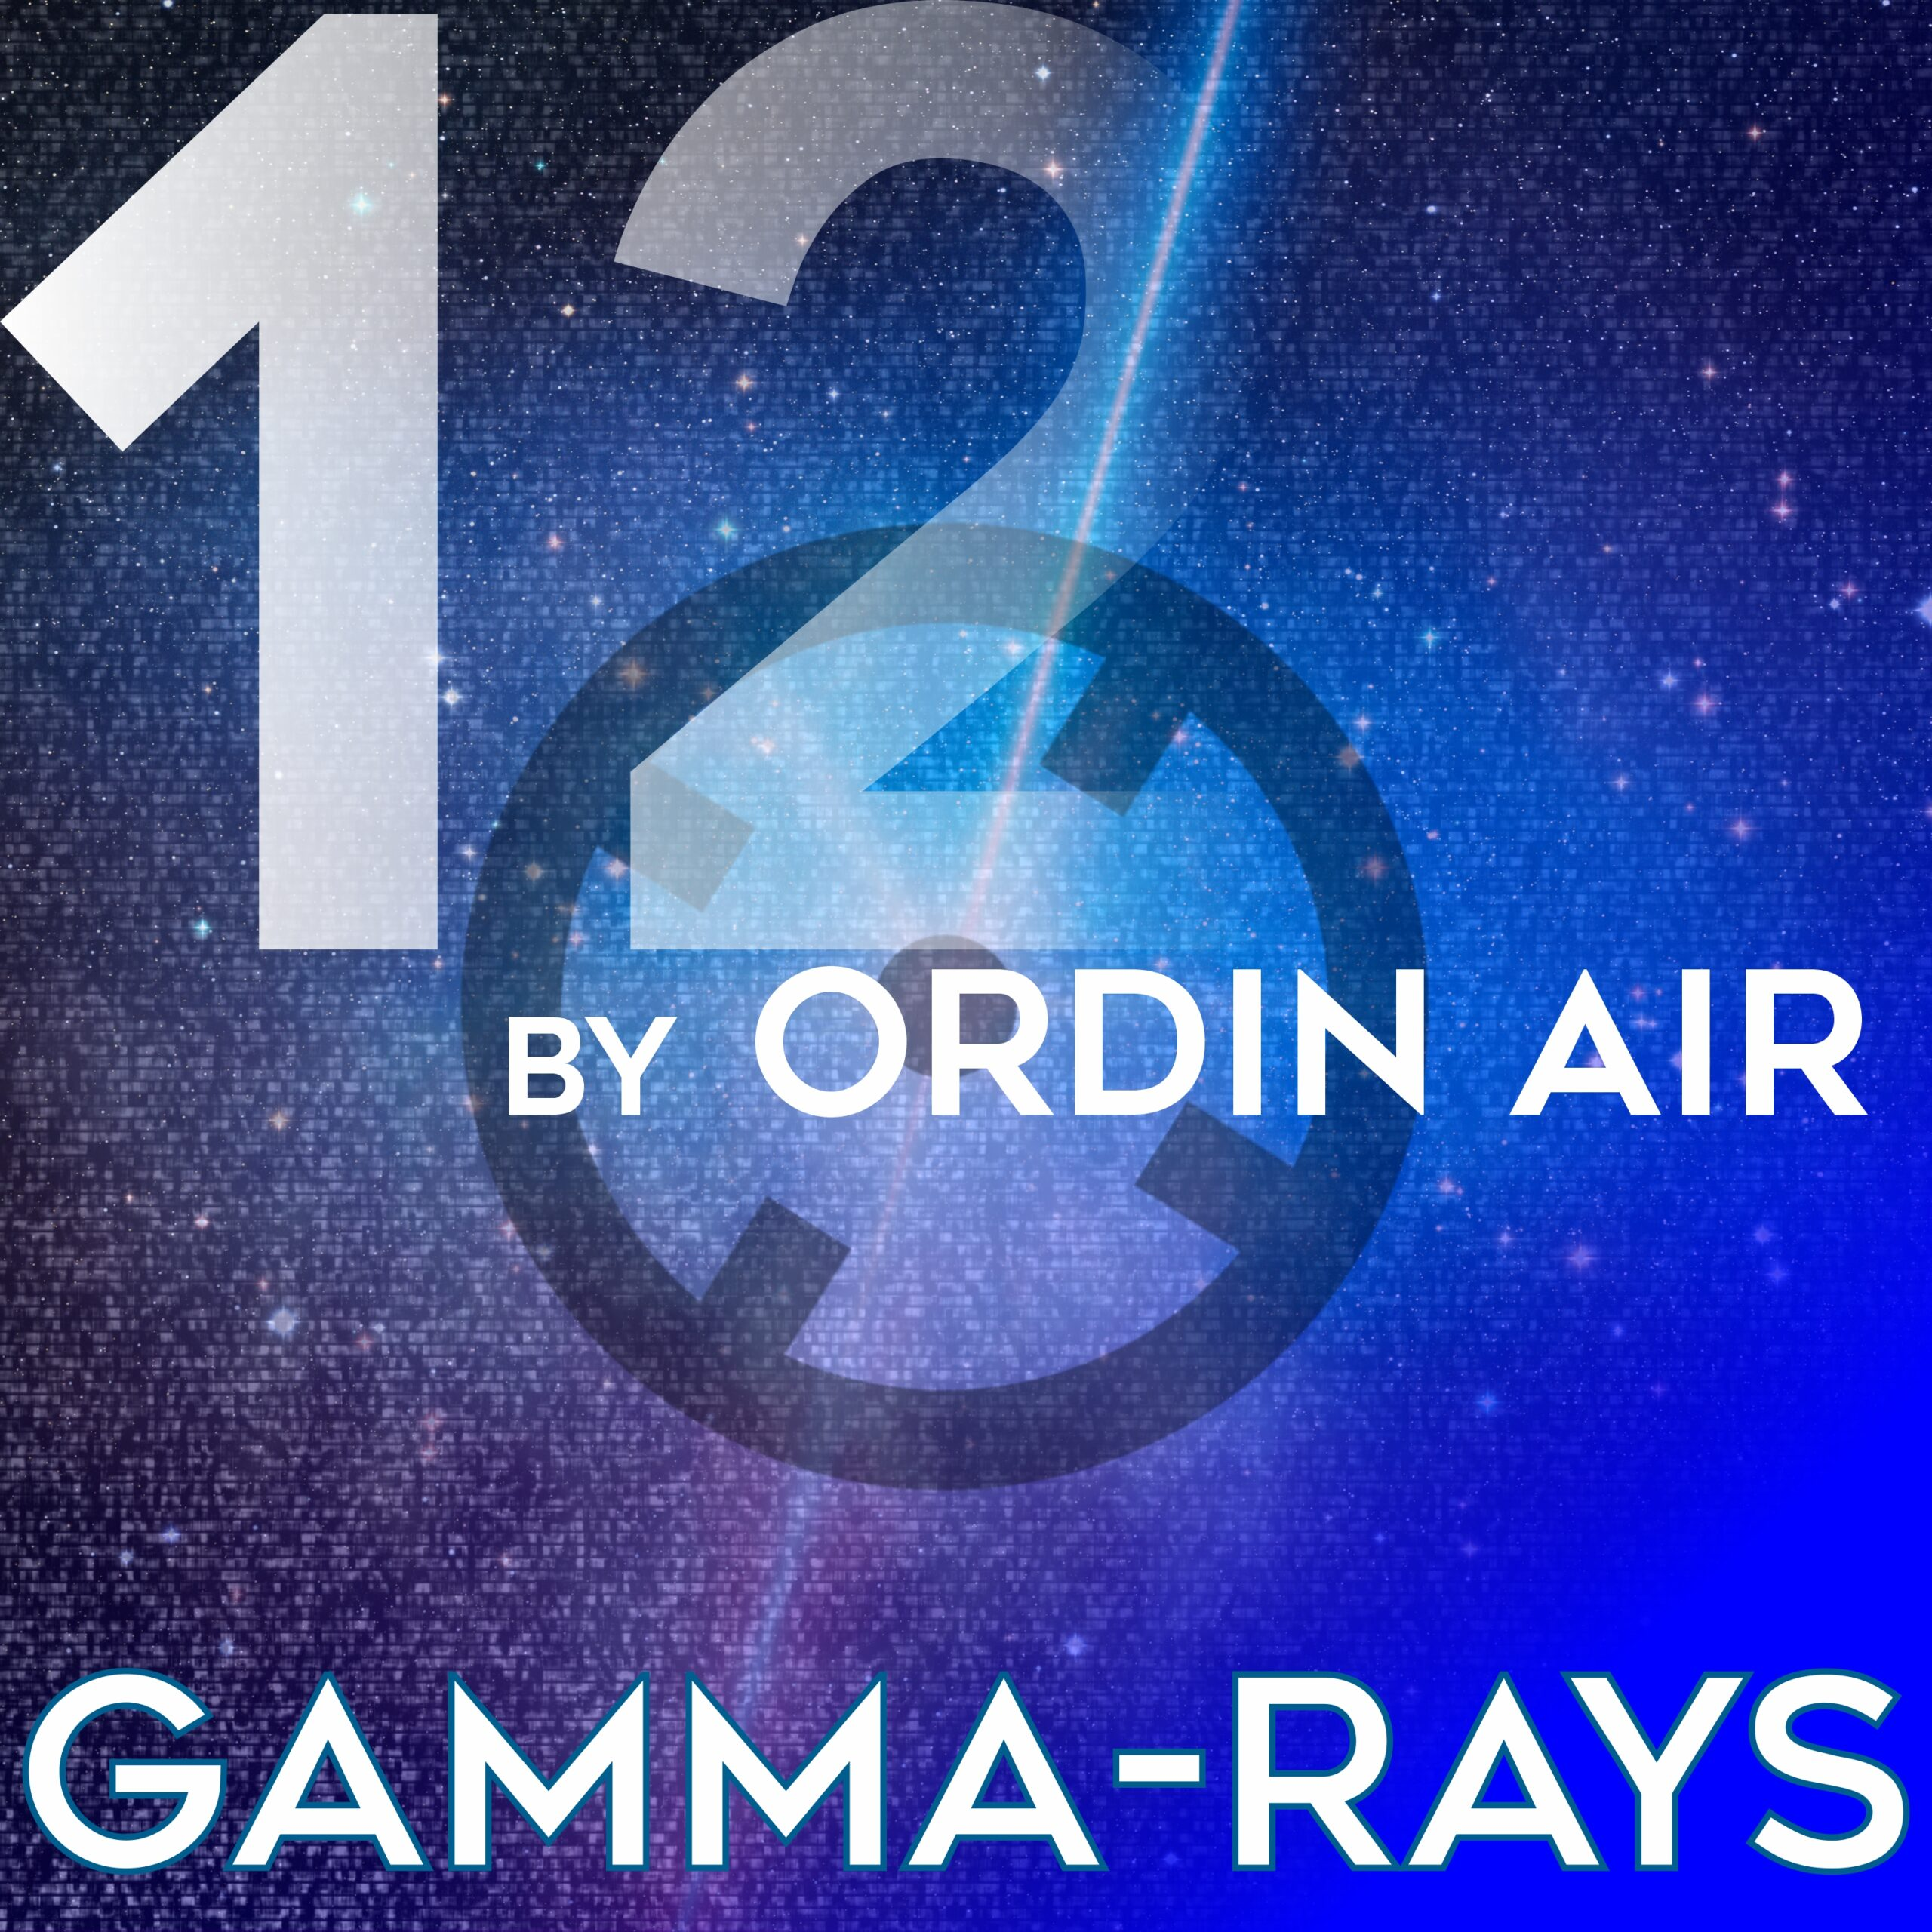 Ordin Air - Gamma Rays [Dark Distorted Signals]